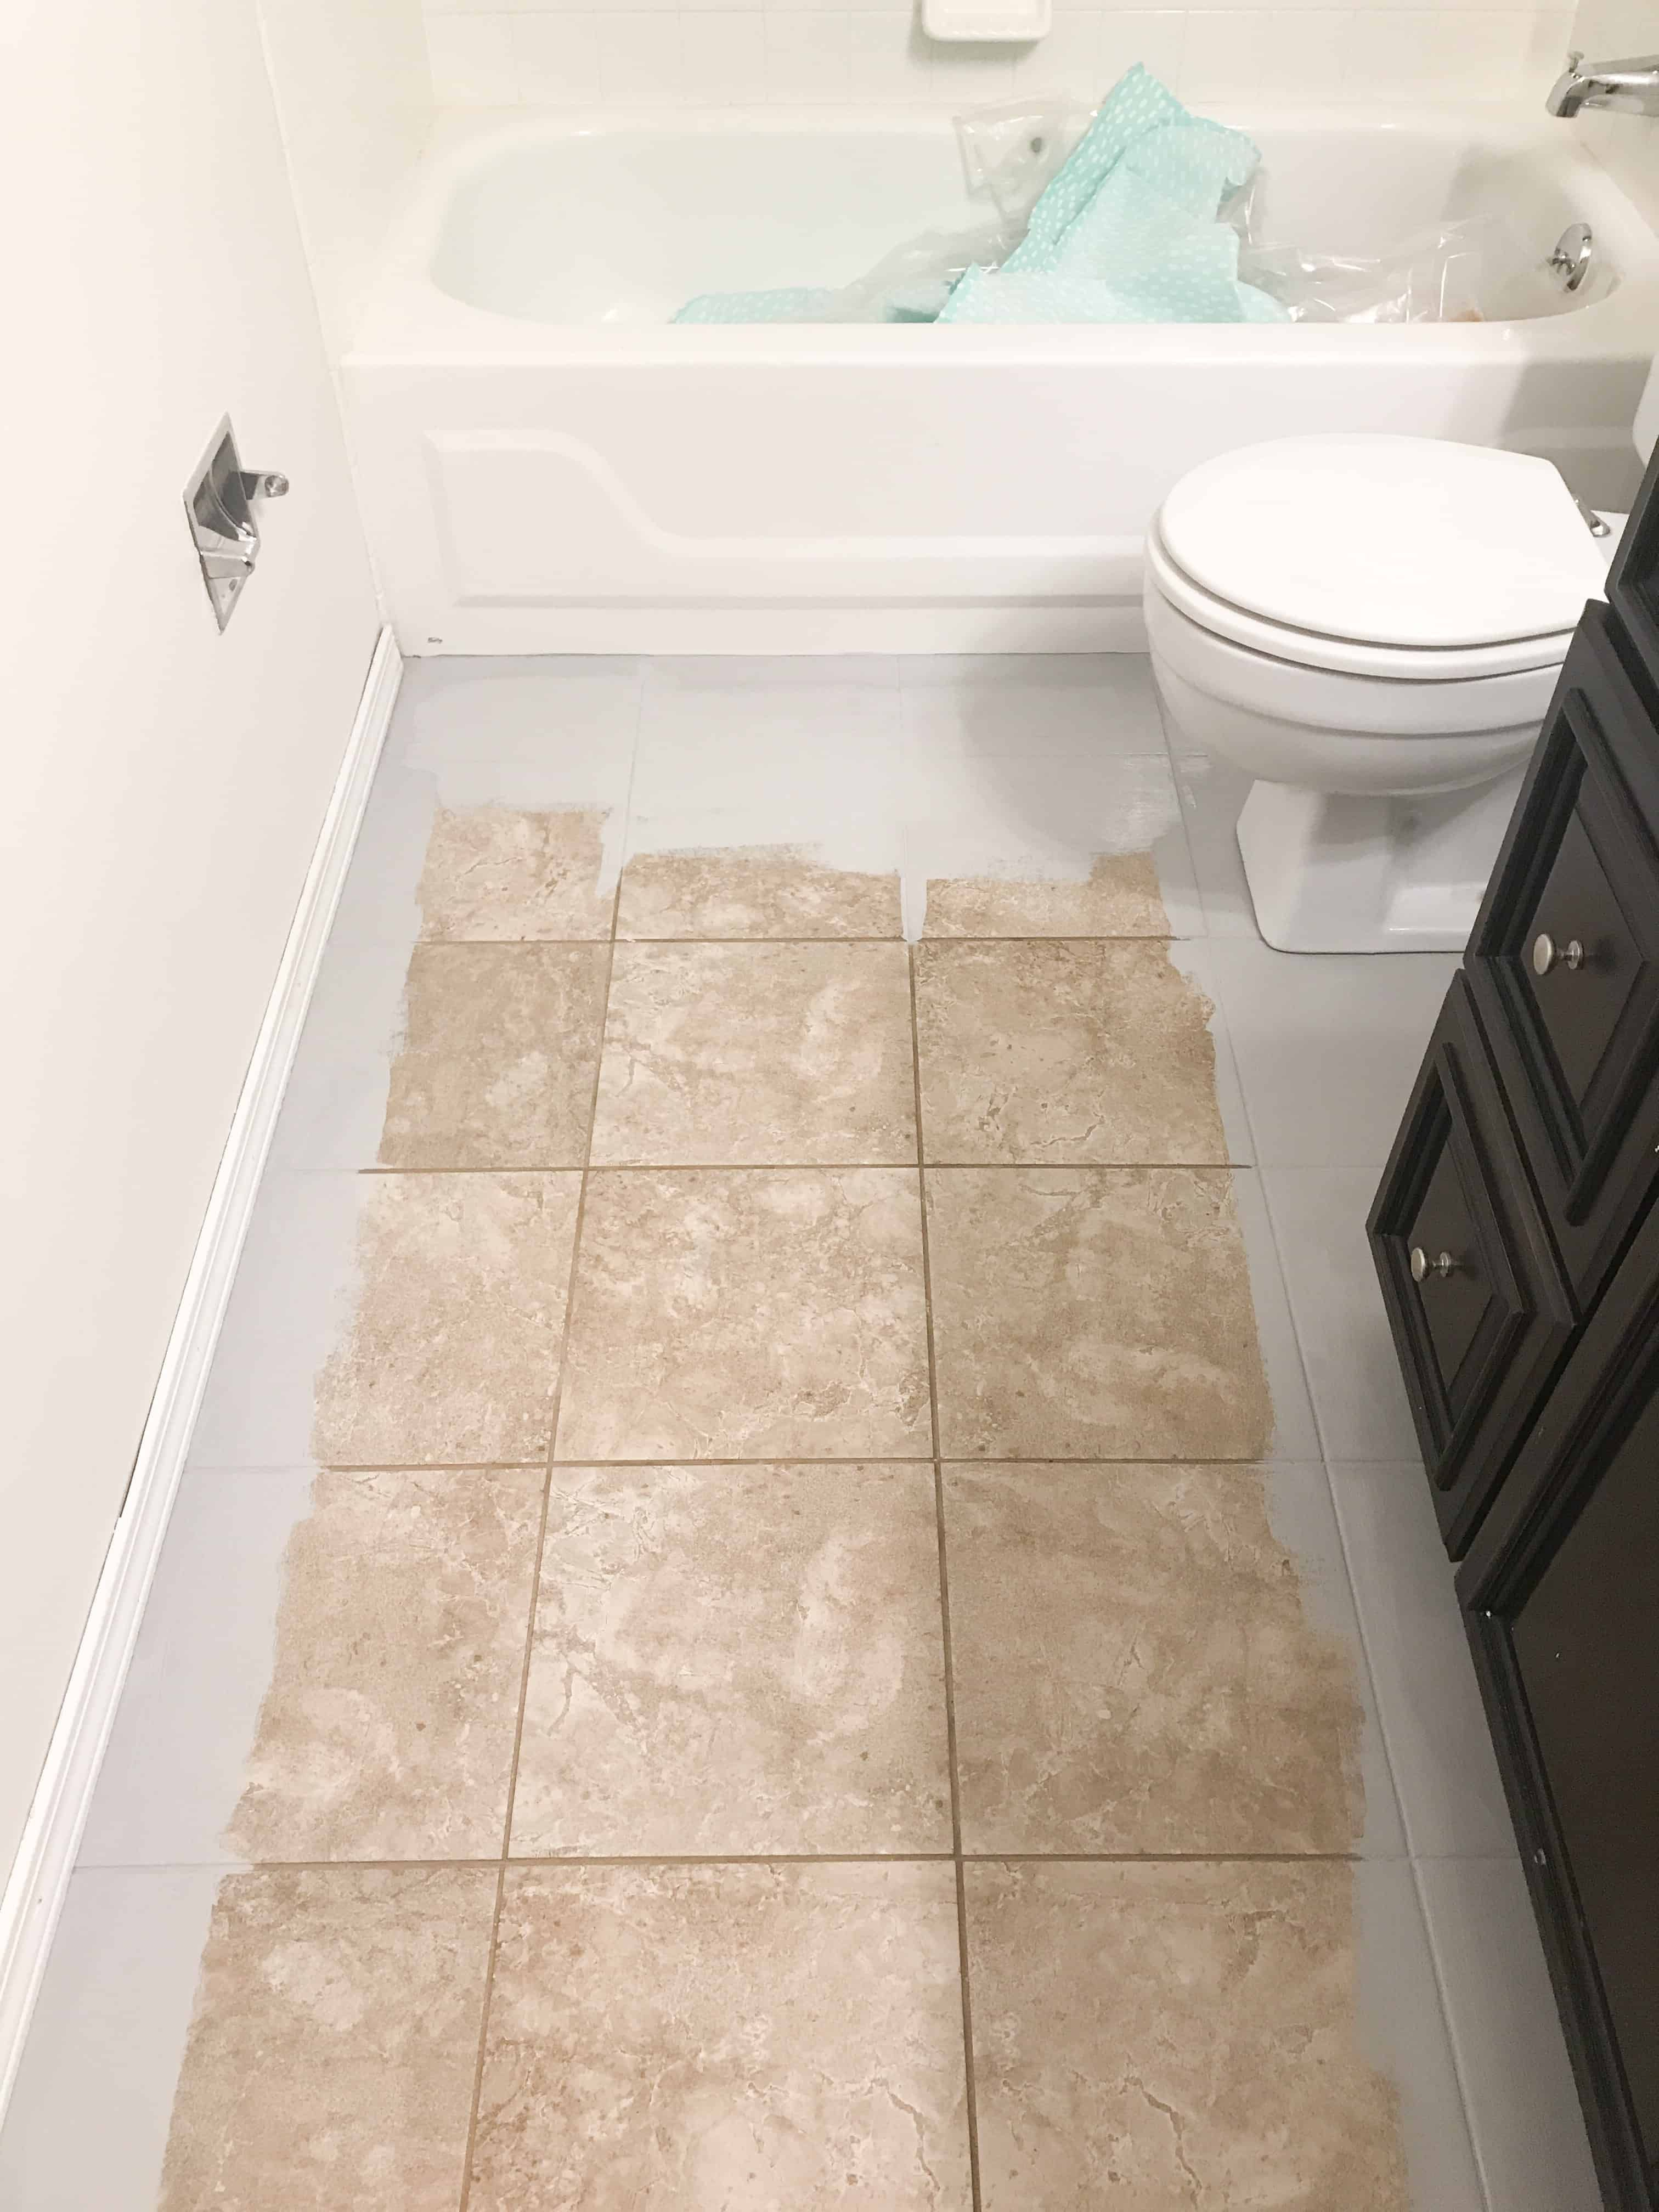 How To Paint Tile Floors Painting Bathroom Tiles Painting Tile